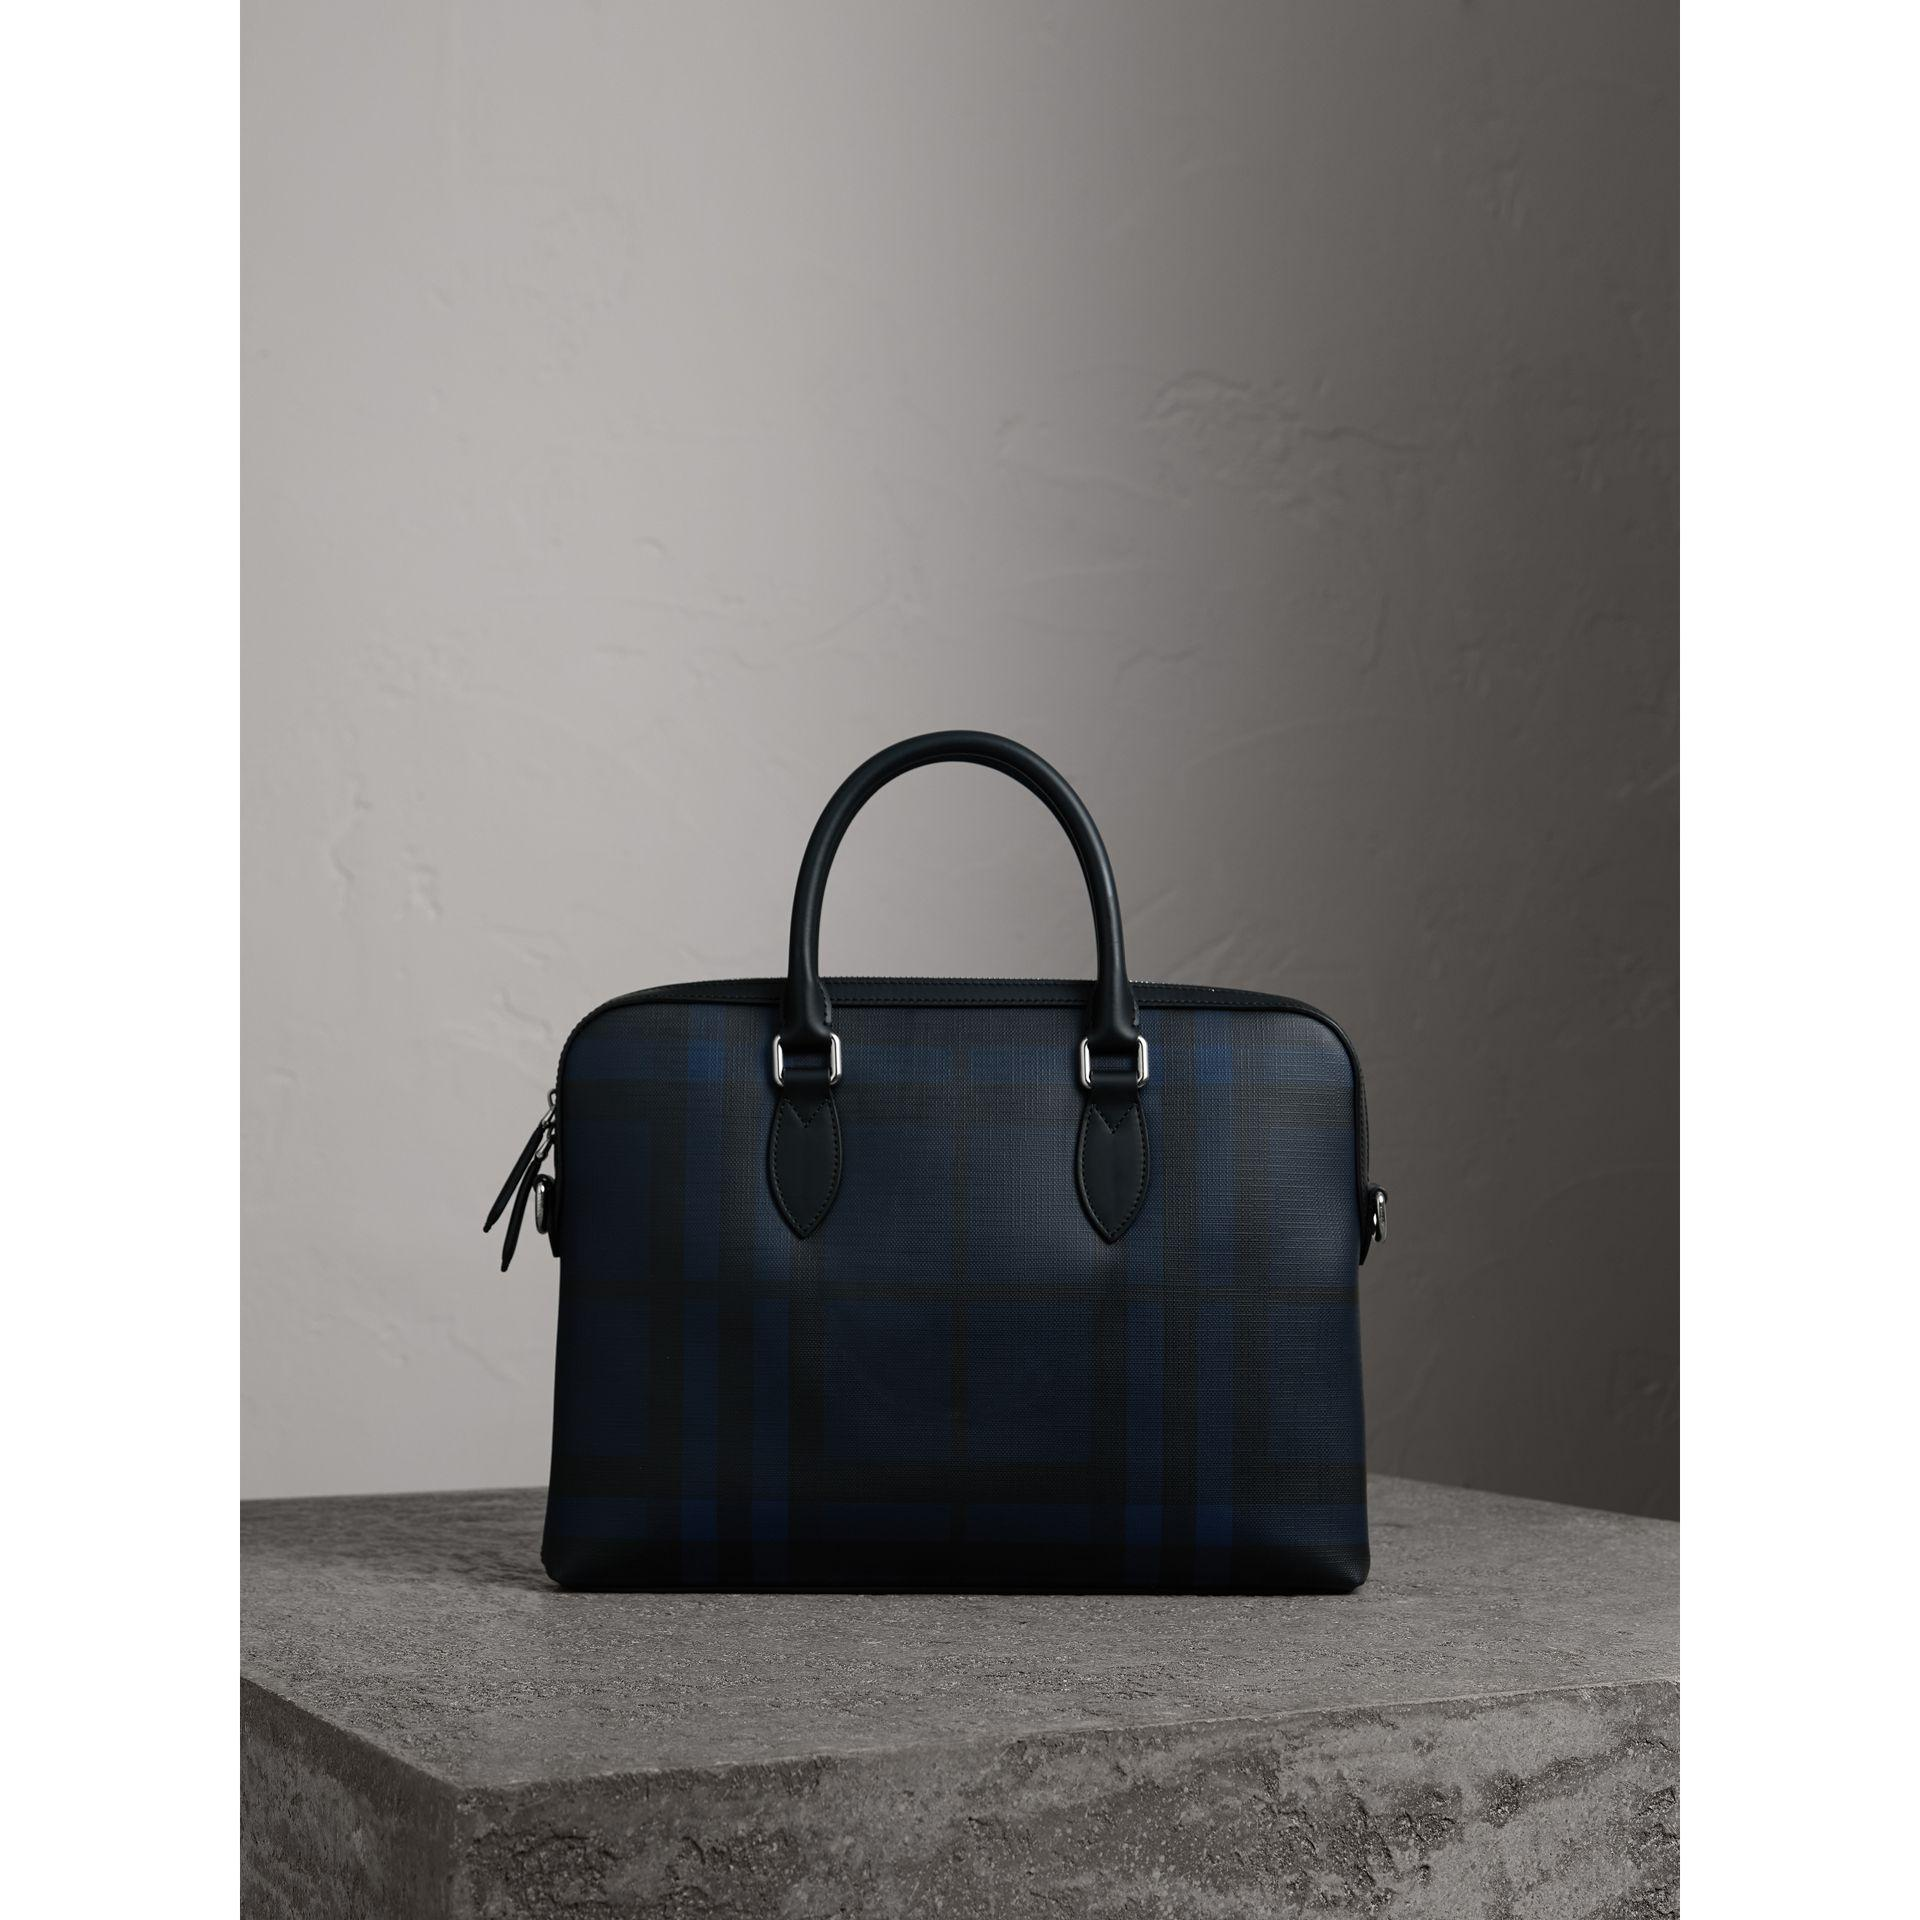 Burberry The Slim Barrow In London Check Navy black for Men - Lyst 1c468a896c6bf